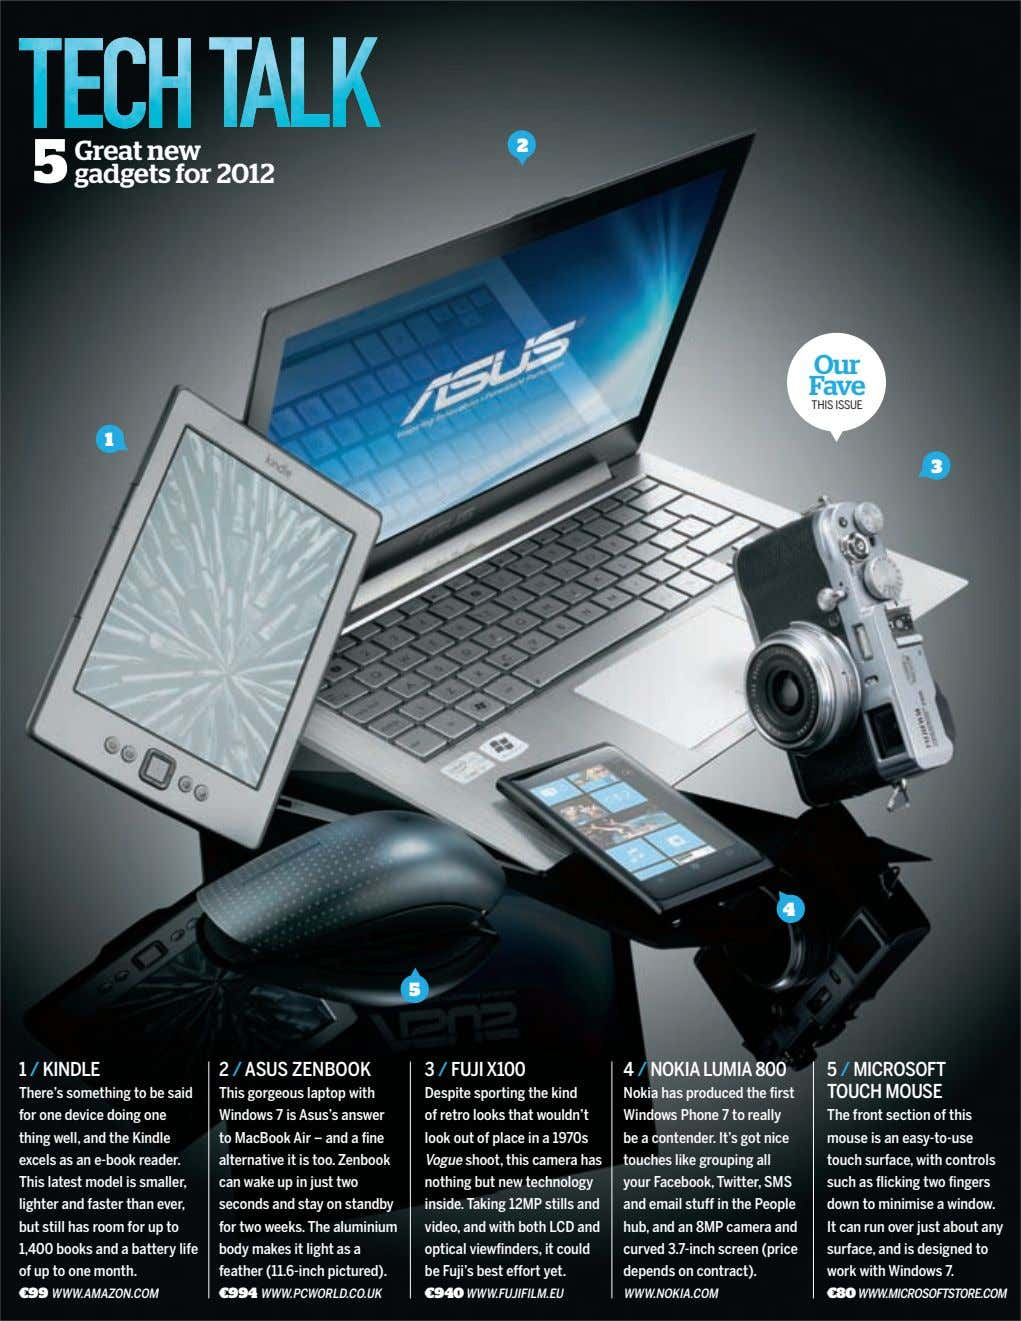 Great new gadgets for 2012 2 Our Fave THIS ISSUE 1 3 4 5 1